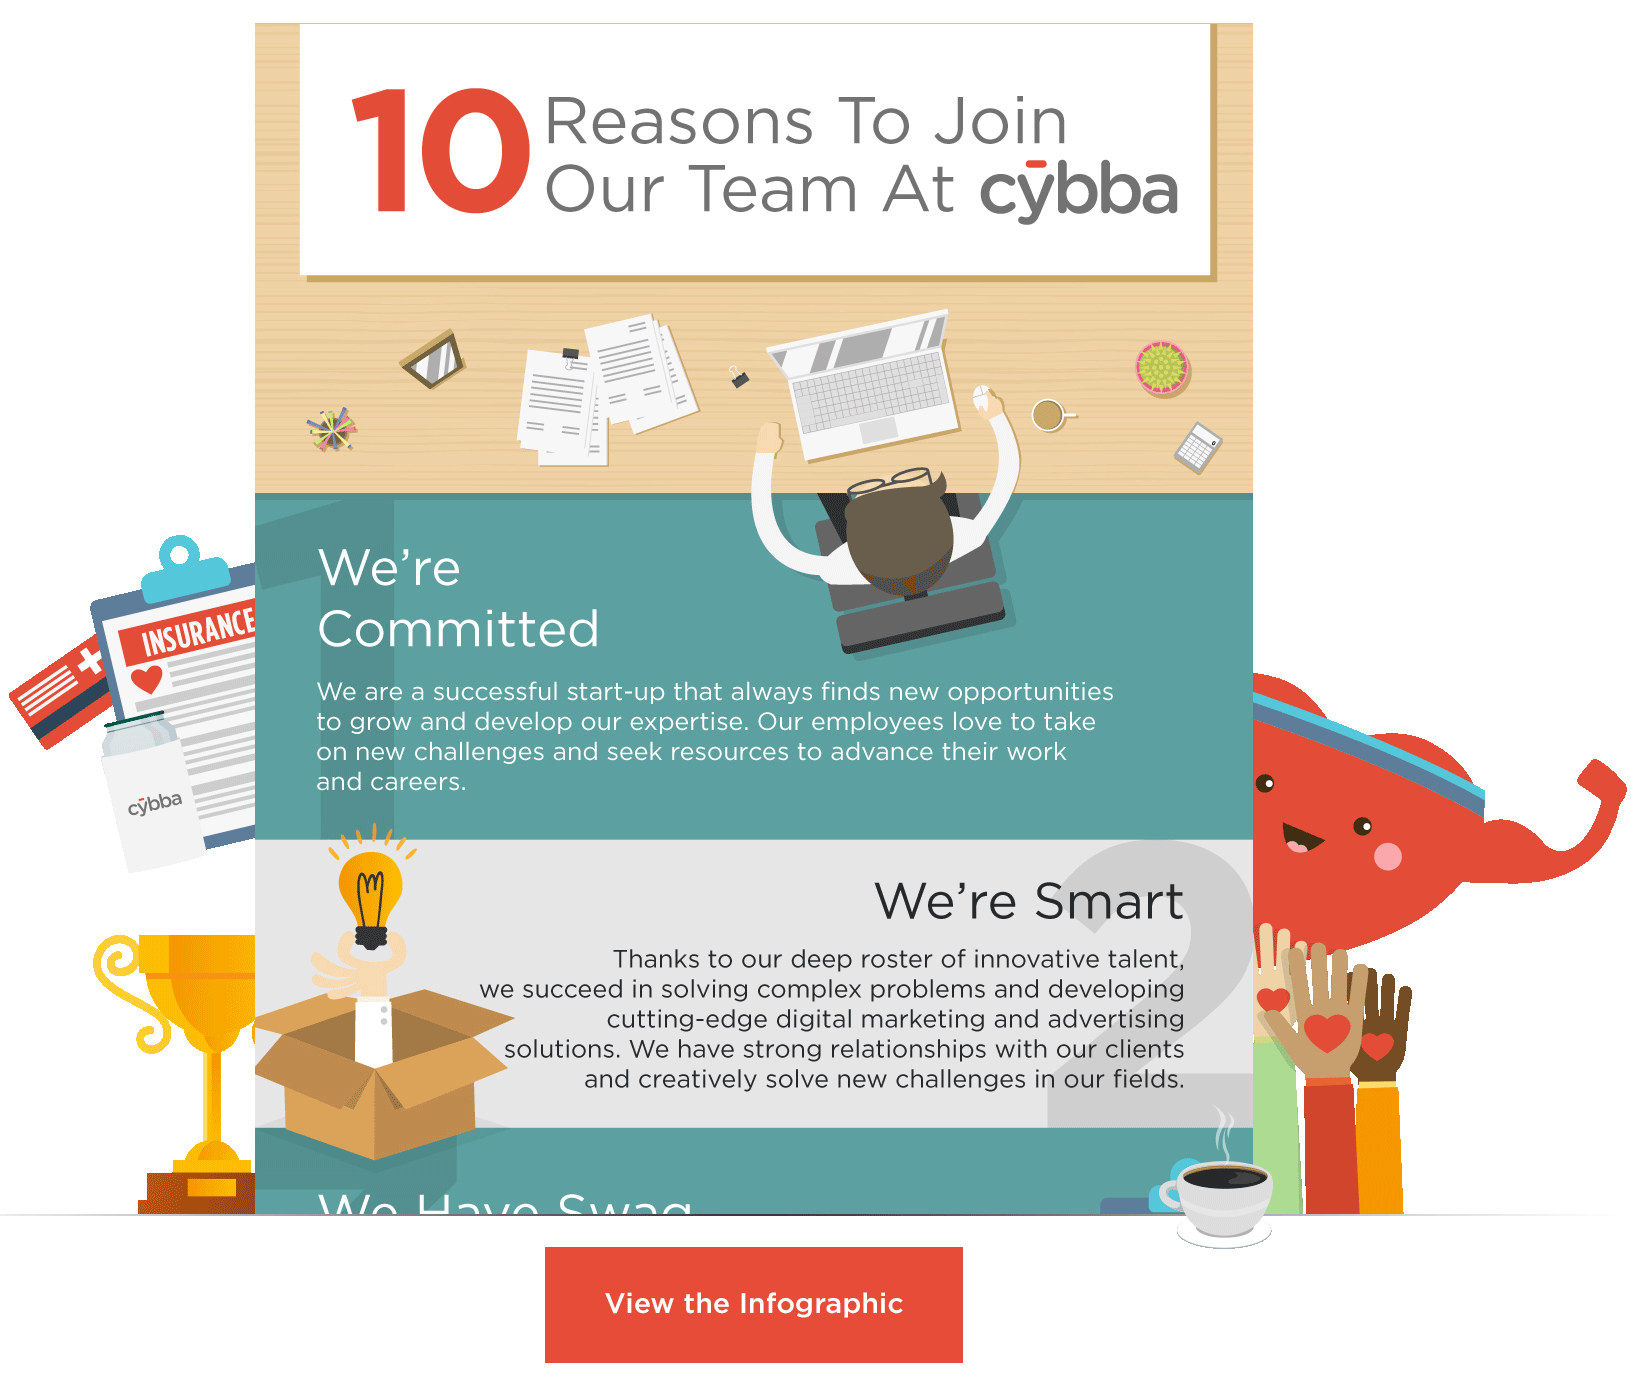 10 Reasons to Join Our Team